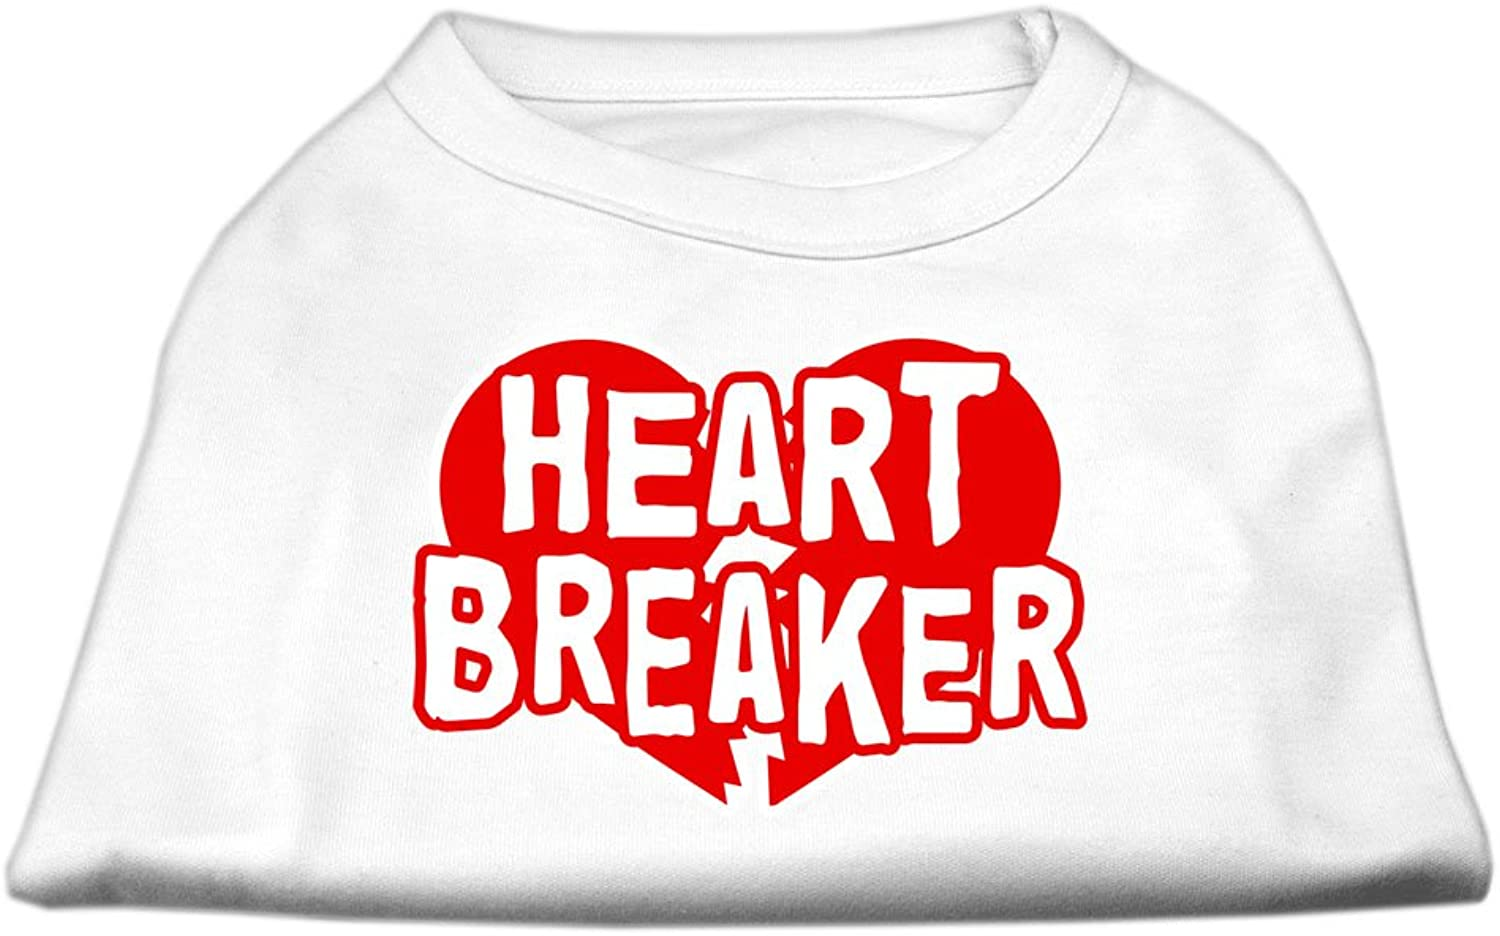 Dog   Cat   Pet Charms Heart Breaker Screen Print Shirt White XL (16)